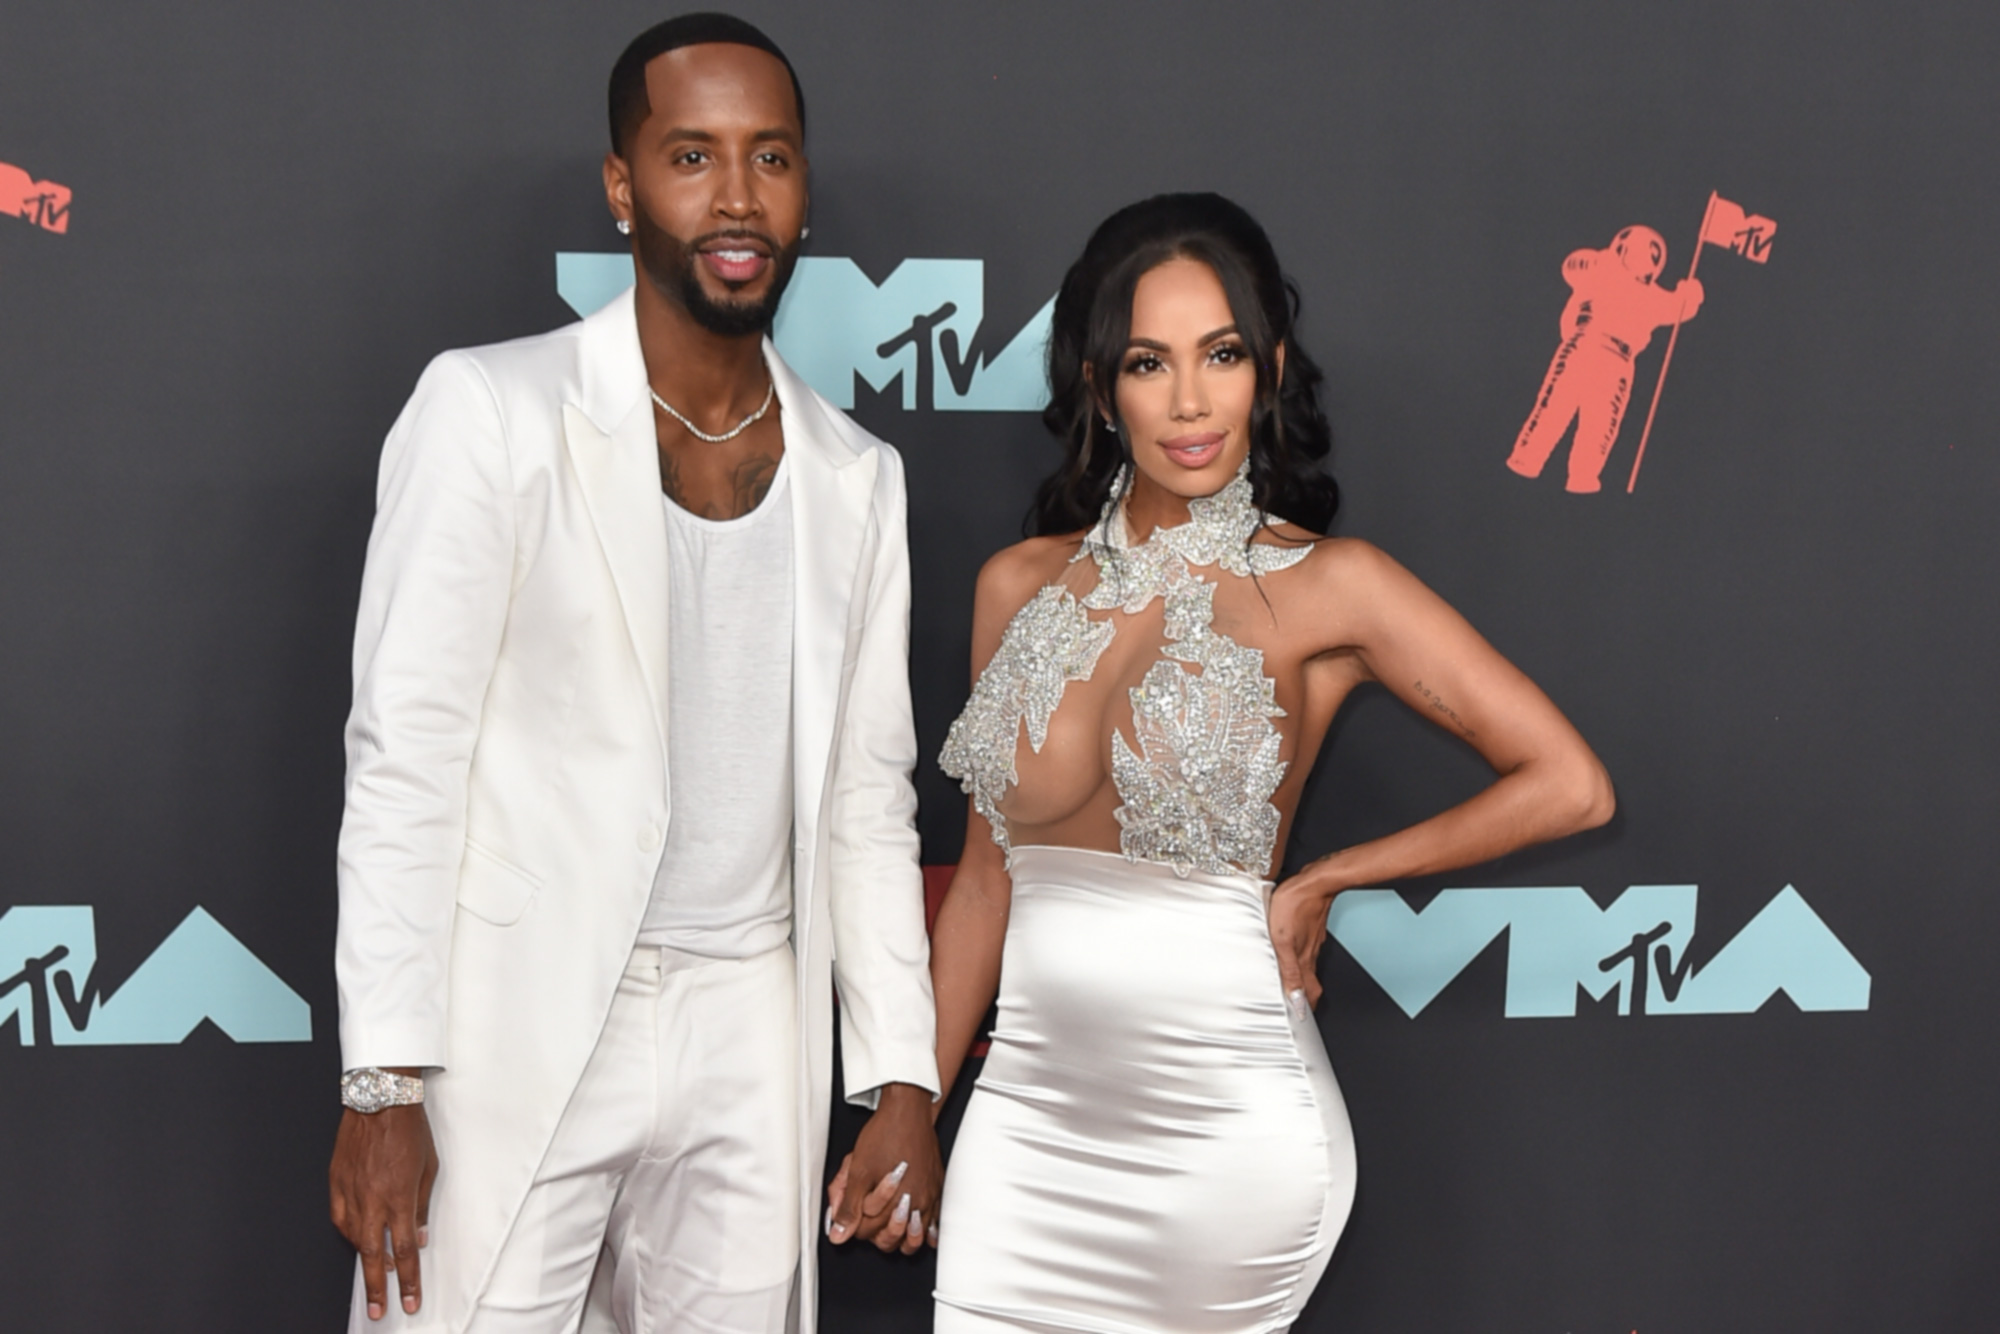 erica-mena-flaunts-her-tattoo-on-social-media-and-fans-are-in-awe